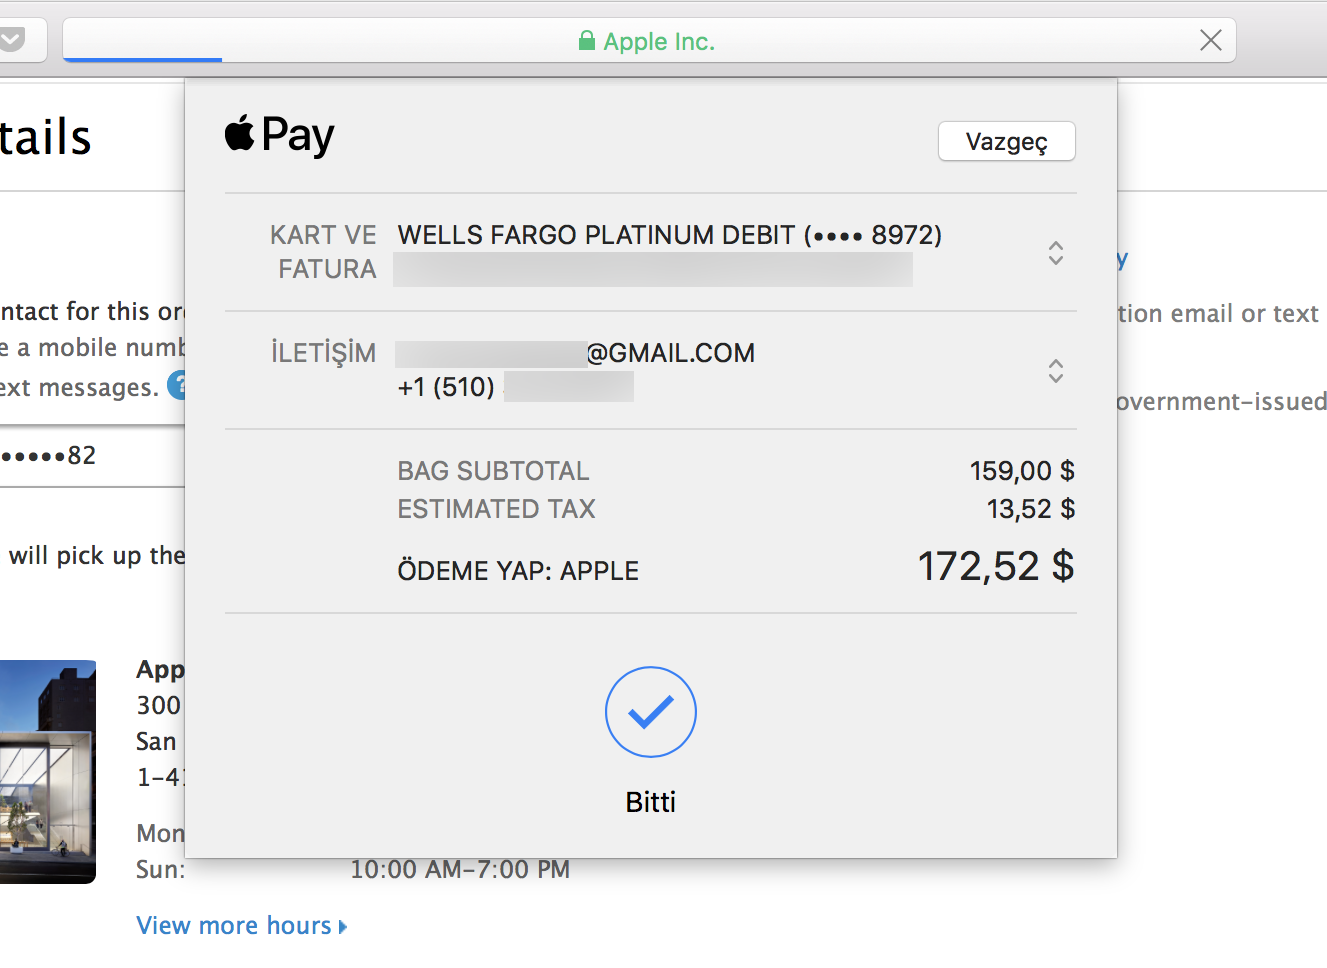 sihirli-elma-mac-apple-pay-14.png